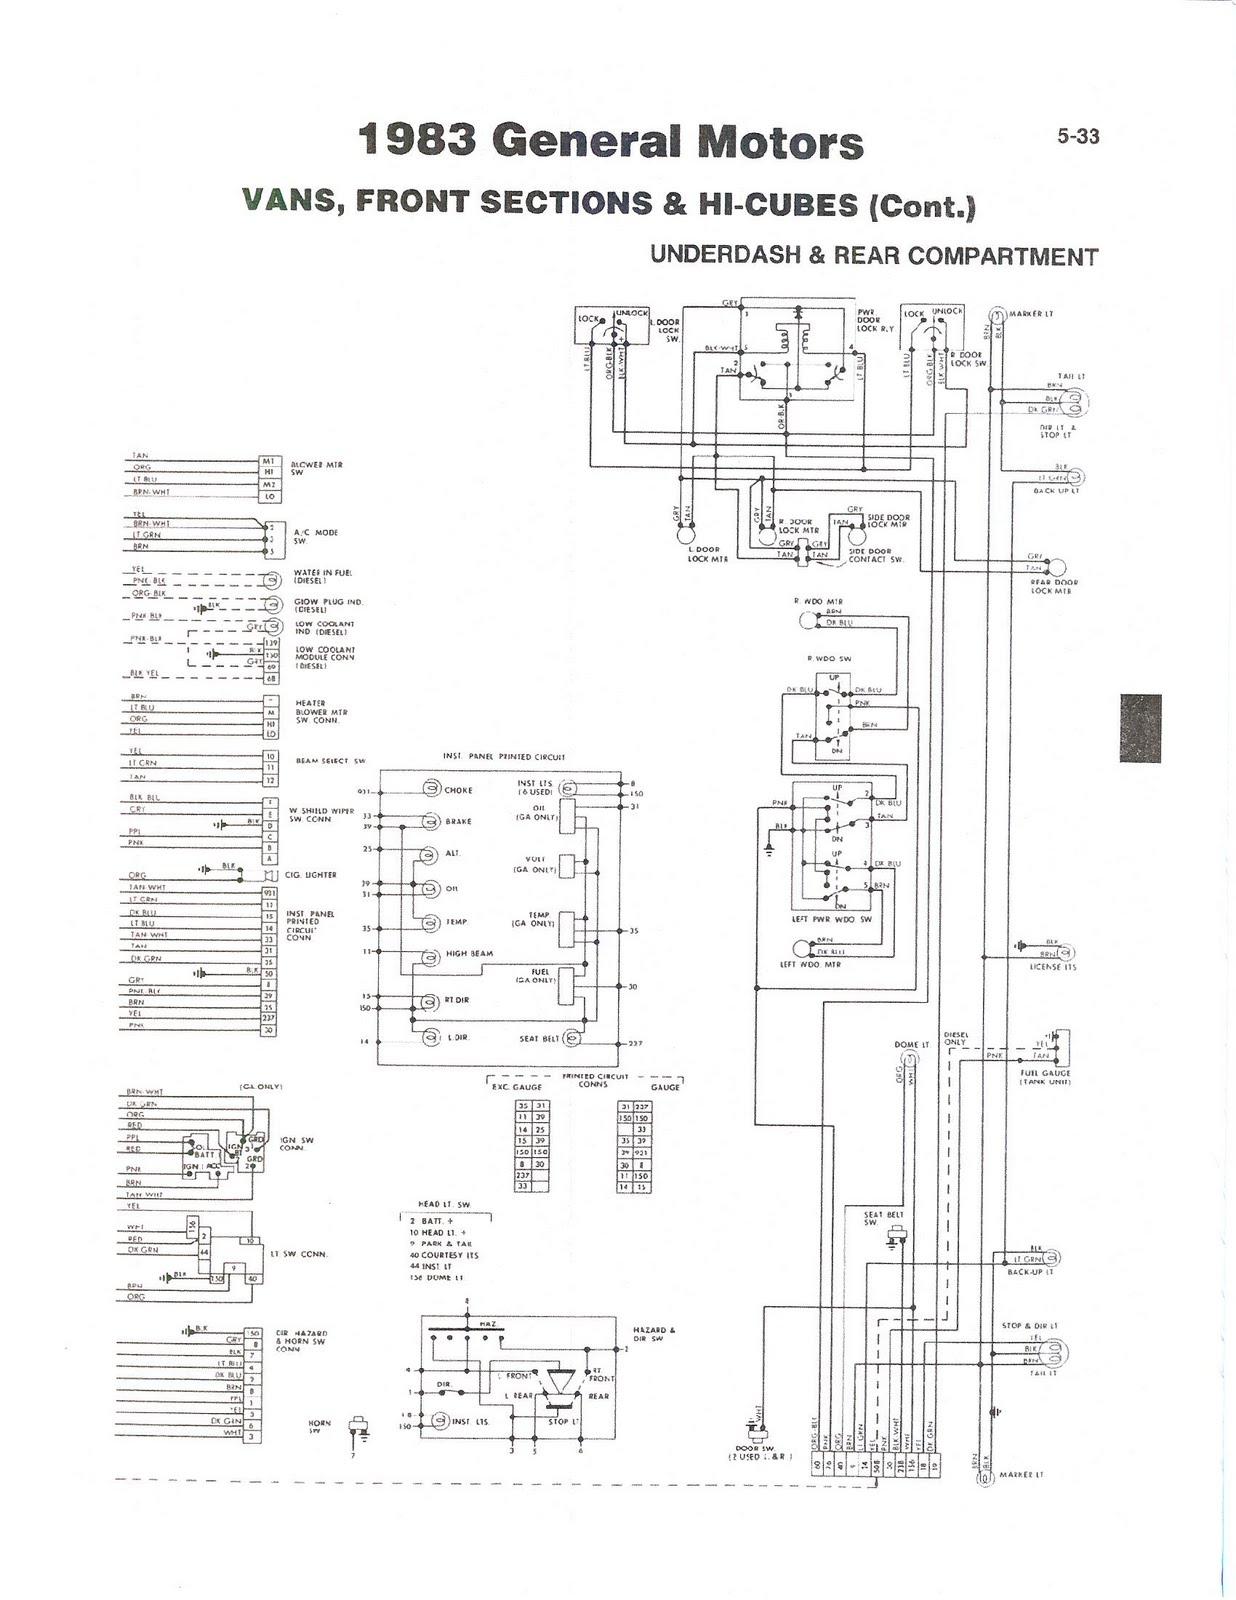 Chevy Express Van Wiring Diagrams Simple Guide About Diagram 2005 1983 Fleetwood Pace Arrow Owners Manuals Wireing 2003